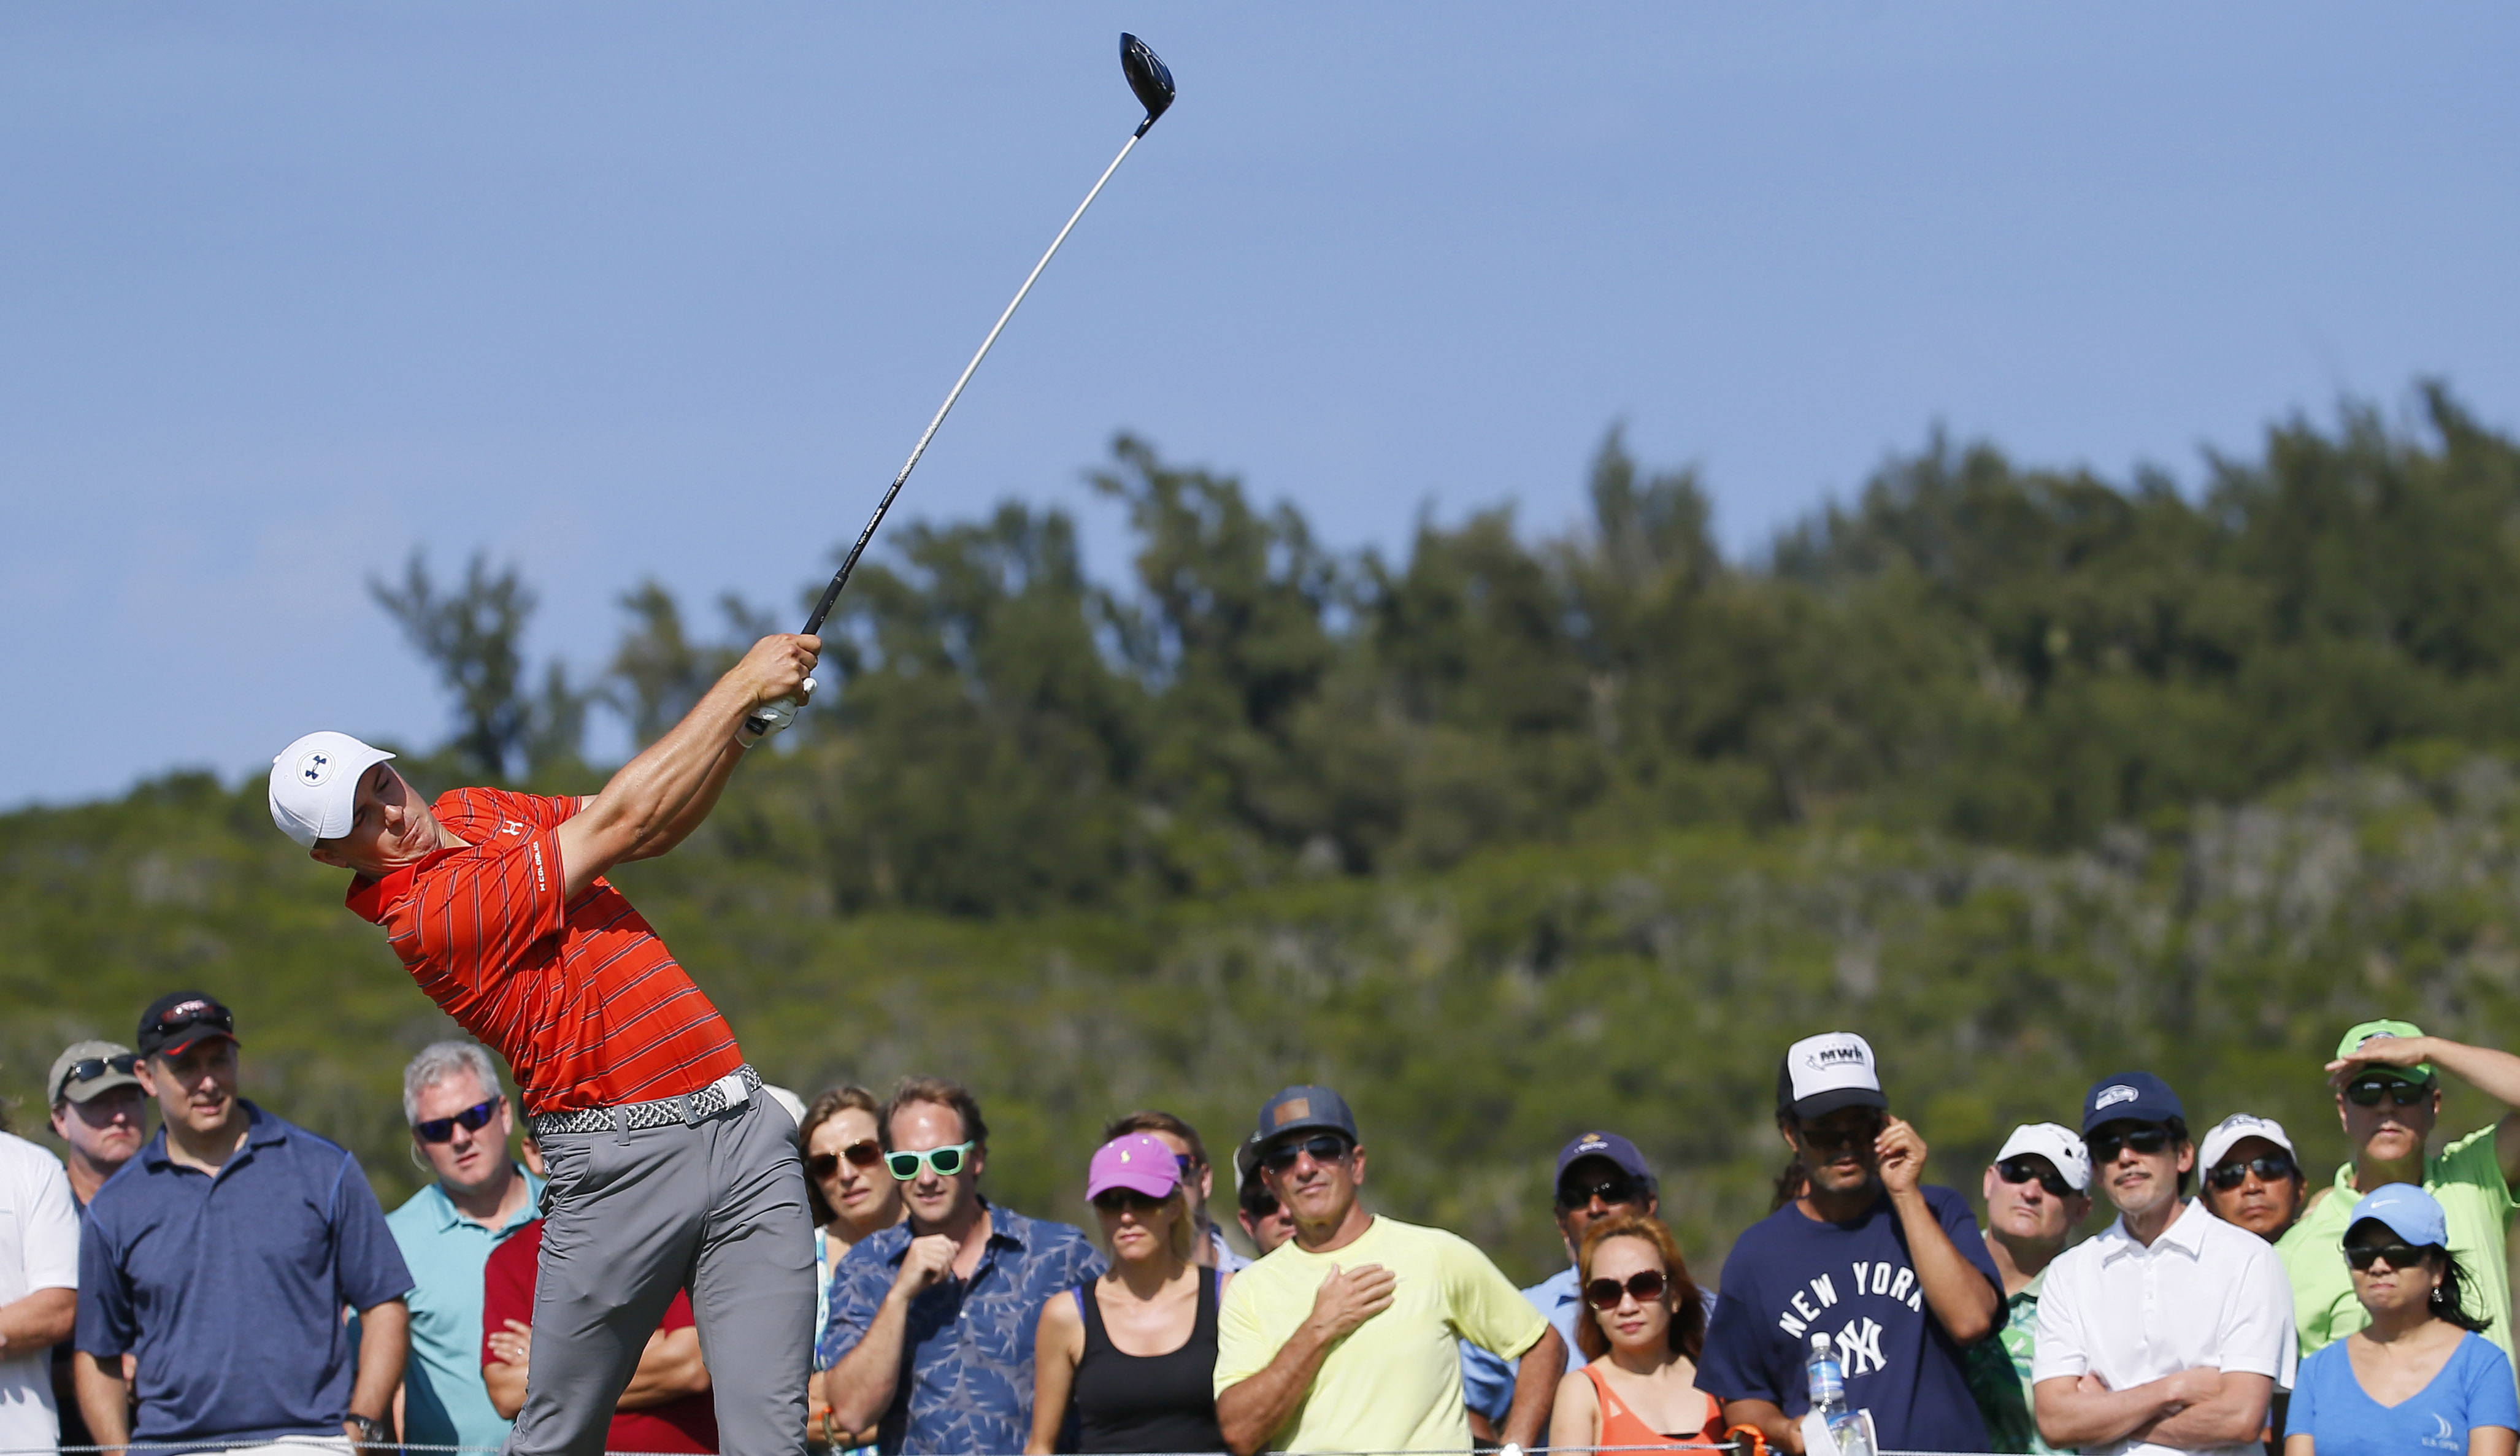 Jordan Spieth hits from the 14th tee during the third round of the Tournament of Champions golf tournament, Saturday, Jan. 9, 2016, at Kapalua Plantation Course on Kapalua, Hawaii. (AP Photo/Matt York)